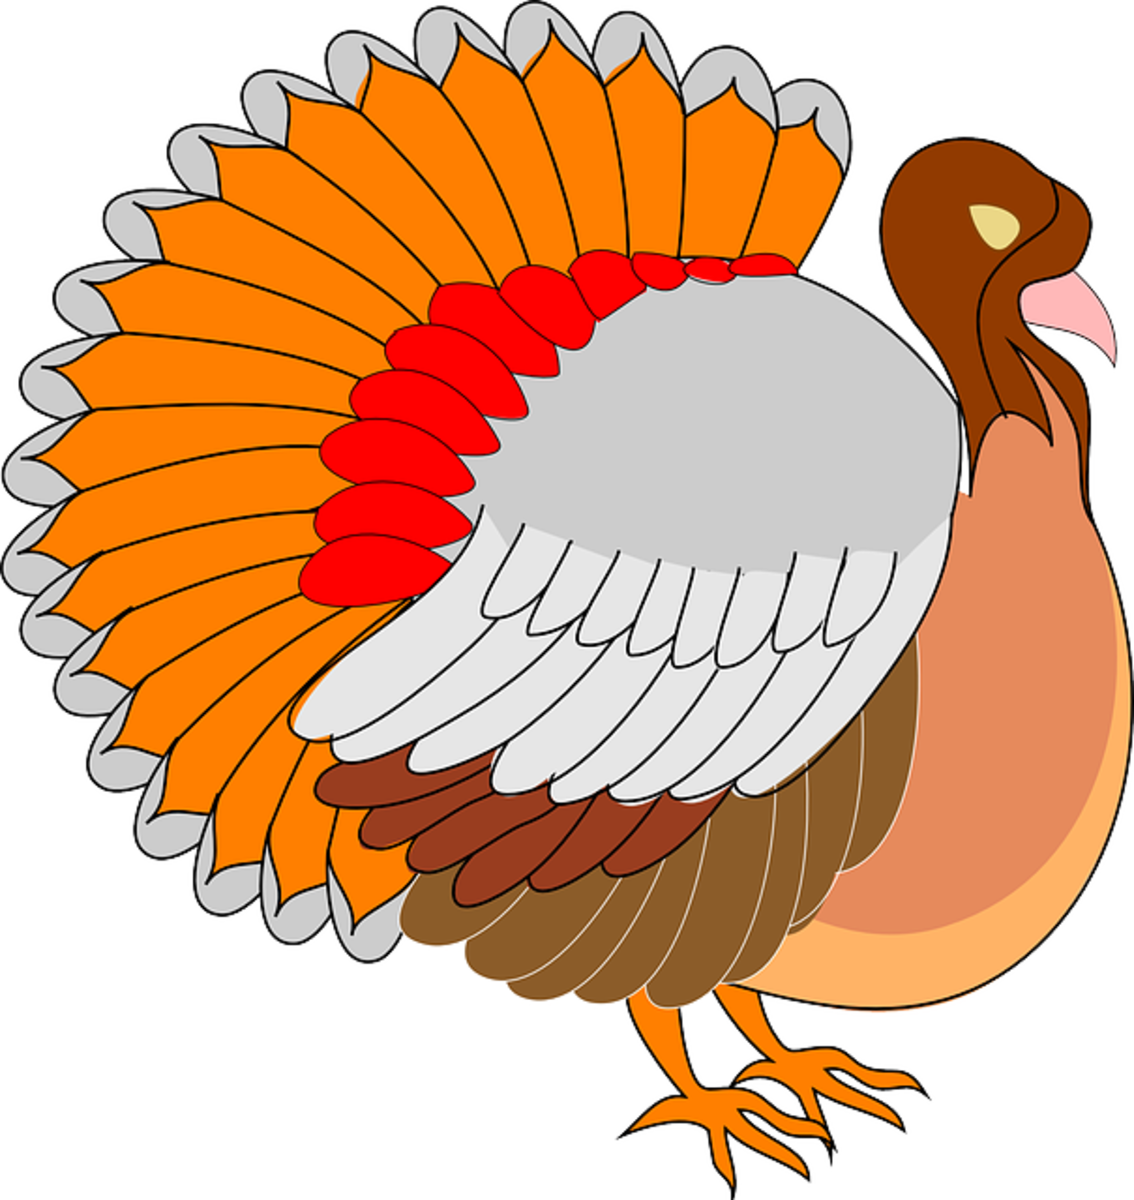 Orange, Red and Brown Turkey